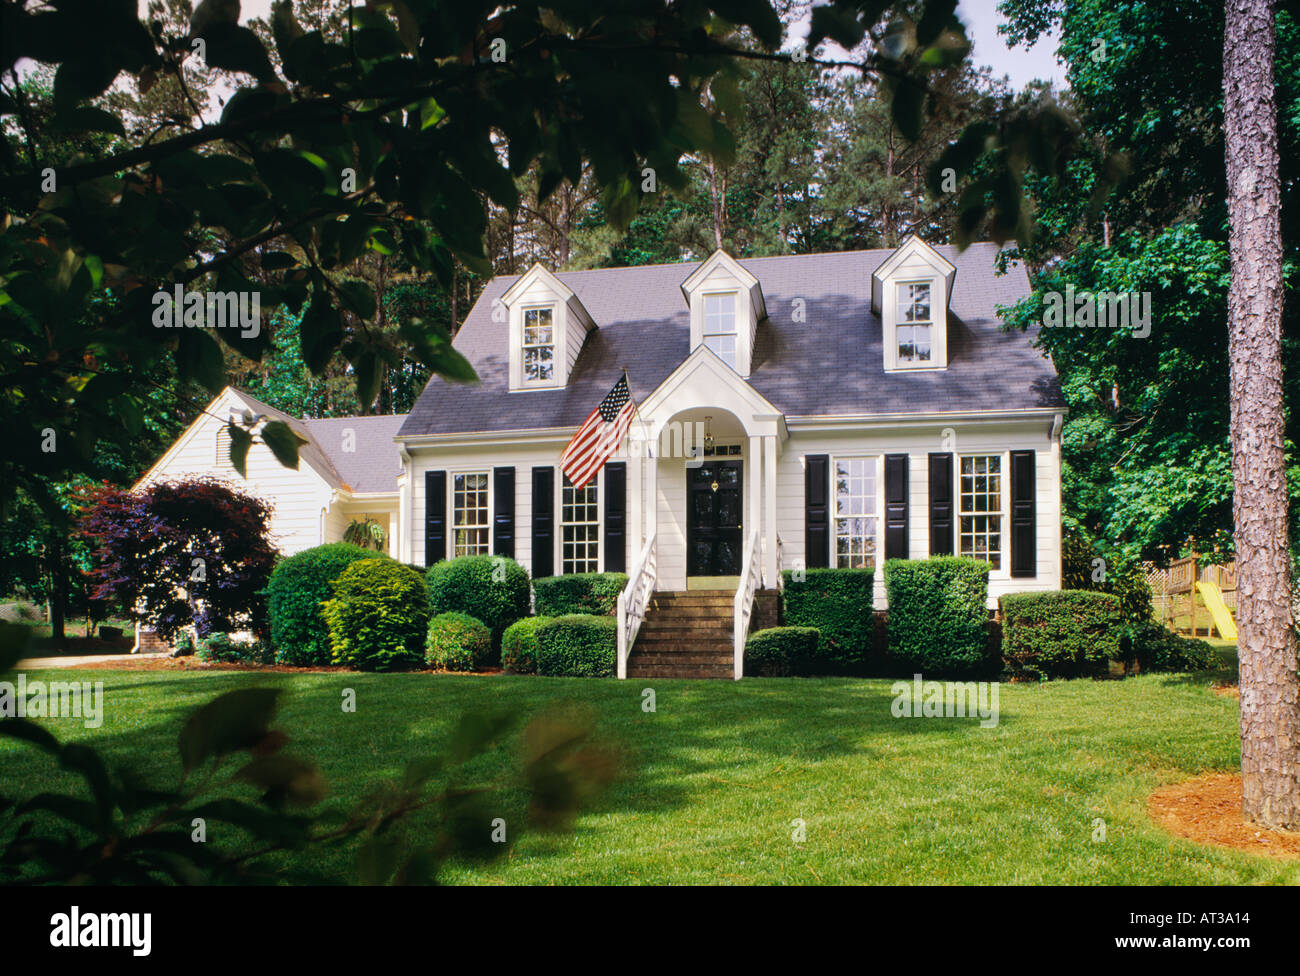 Small White House With Dormers Black Trim And An American Flag Hanging Near  The Front Door